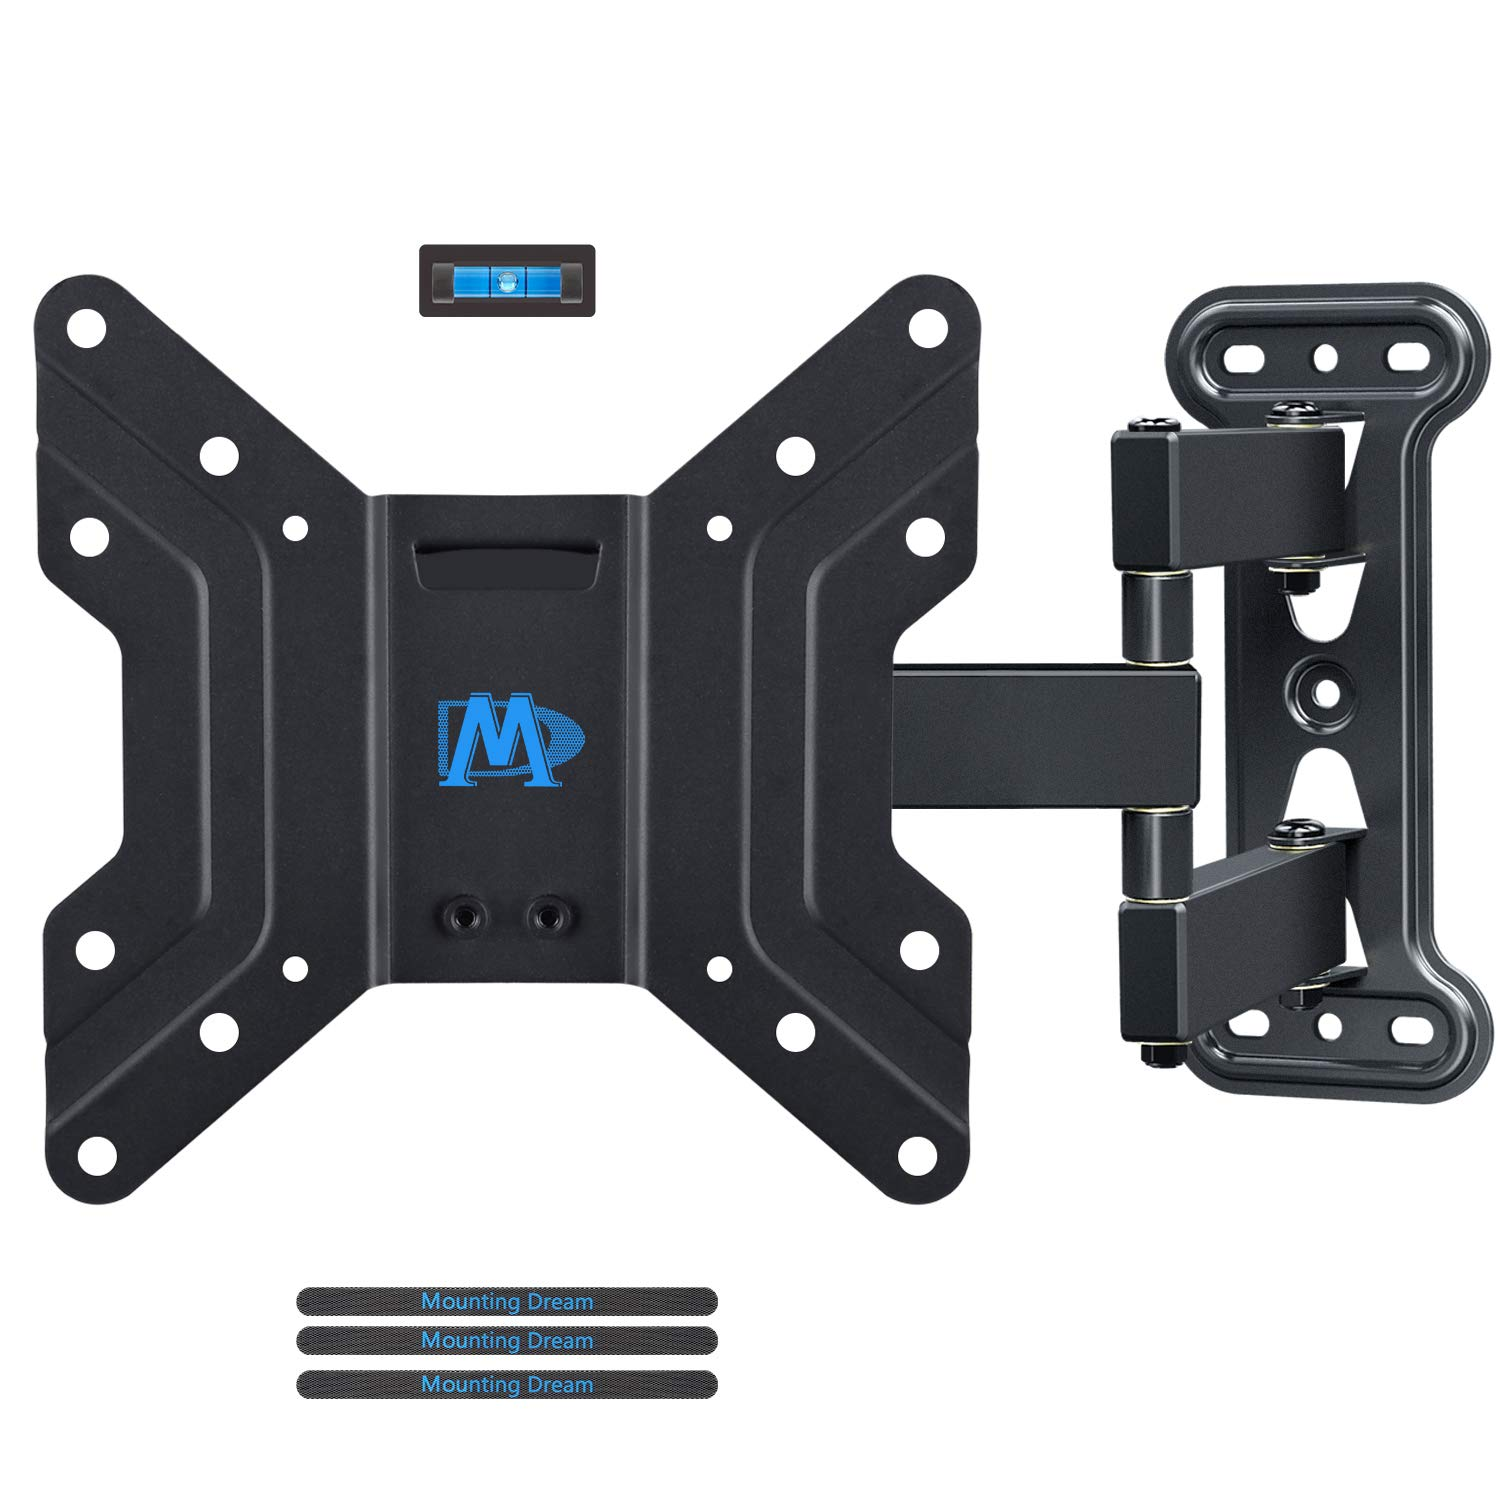 Mounting Dream Full Motion TV Wall Mount Bracket with Perfect Center Design Articulating Arms, Easy Assembly for VESA 200 x 200mm, Fits Most of 17-39 Inches LED, LCD TV Up to 60 Lbs Loading Capacity MD2413-S